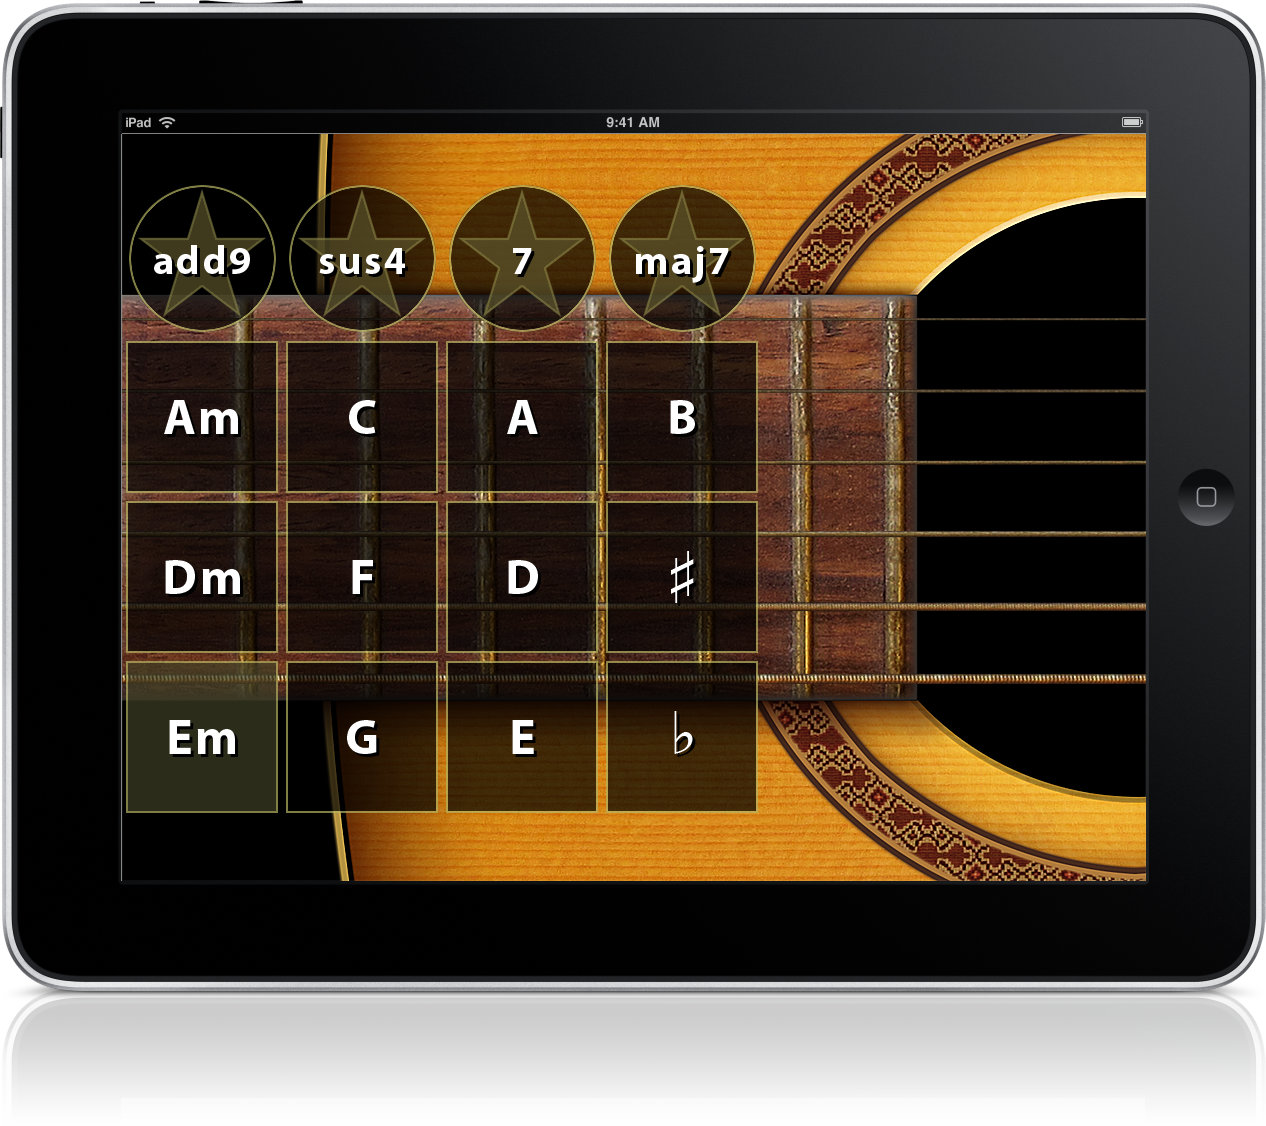 wallander instruments wi guitar guitar music app for iphone ipad. Black Bedroom Furniture Sets. Home Design Ideas